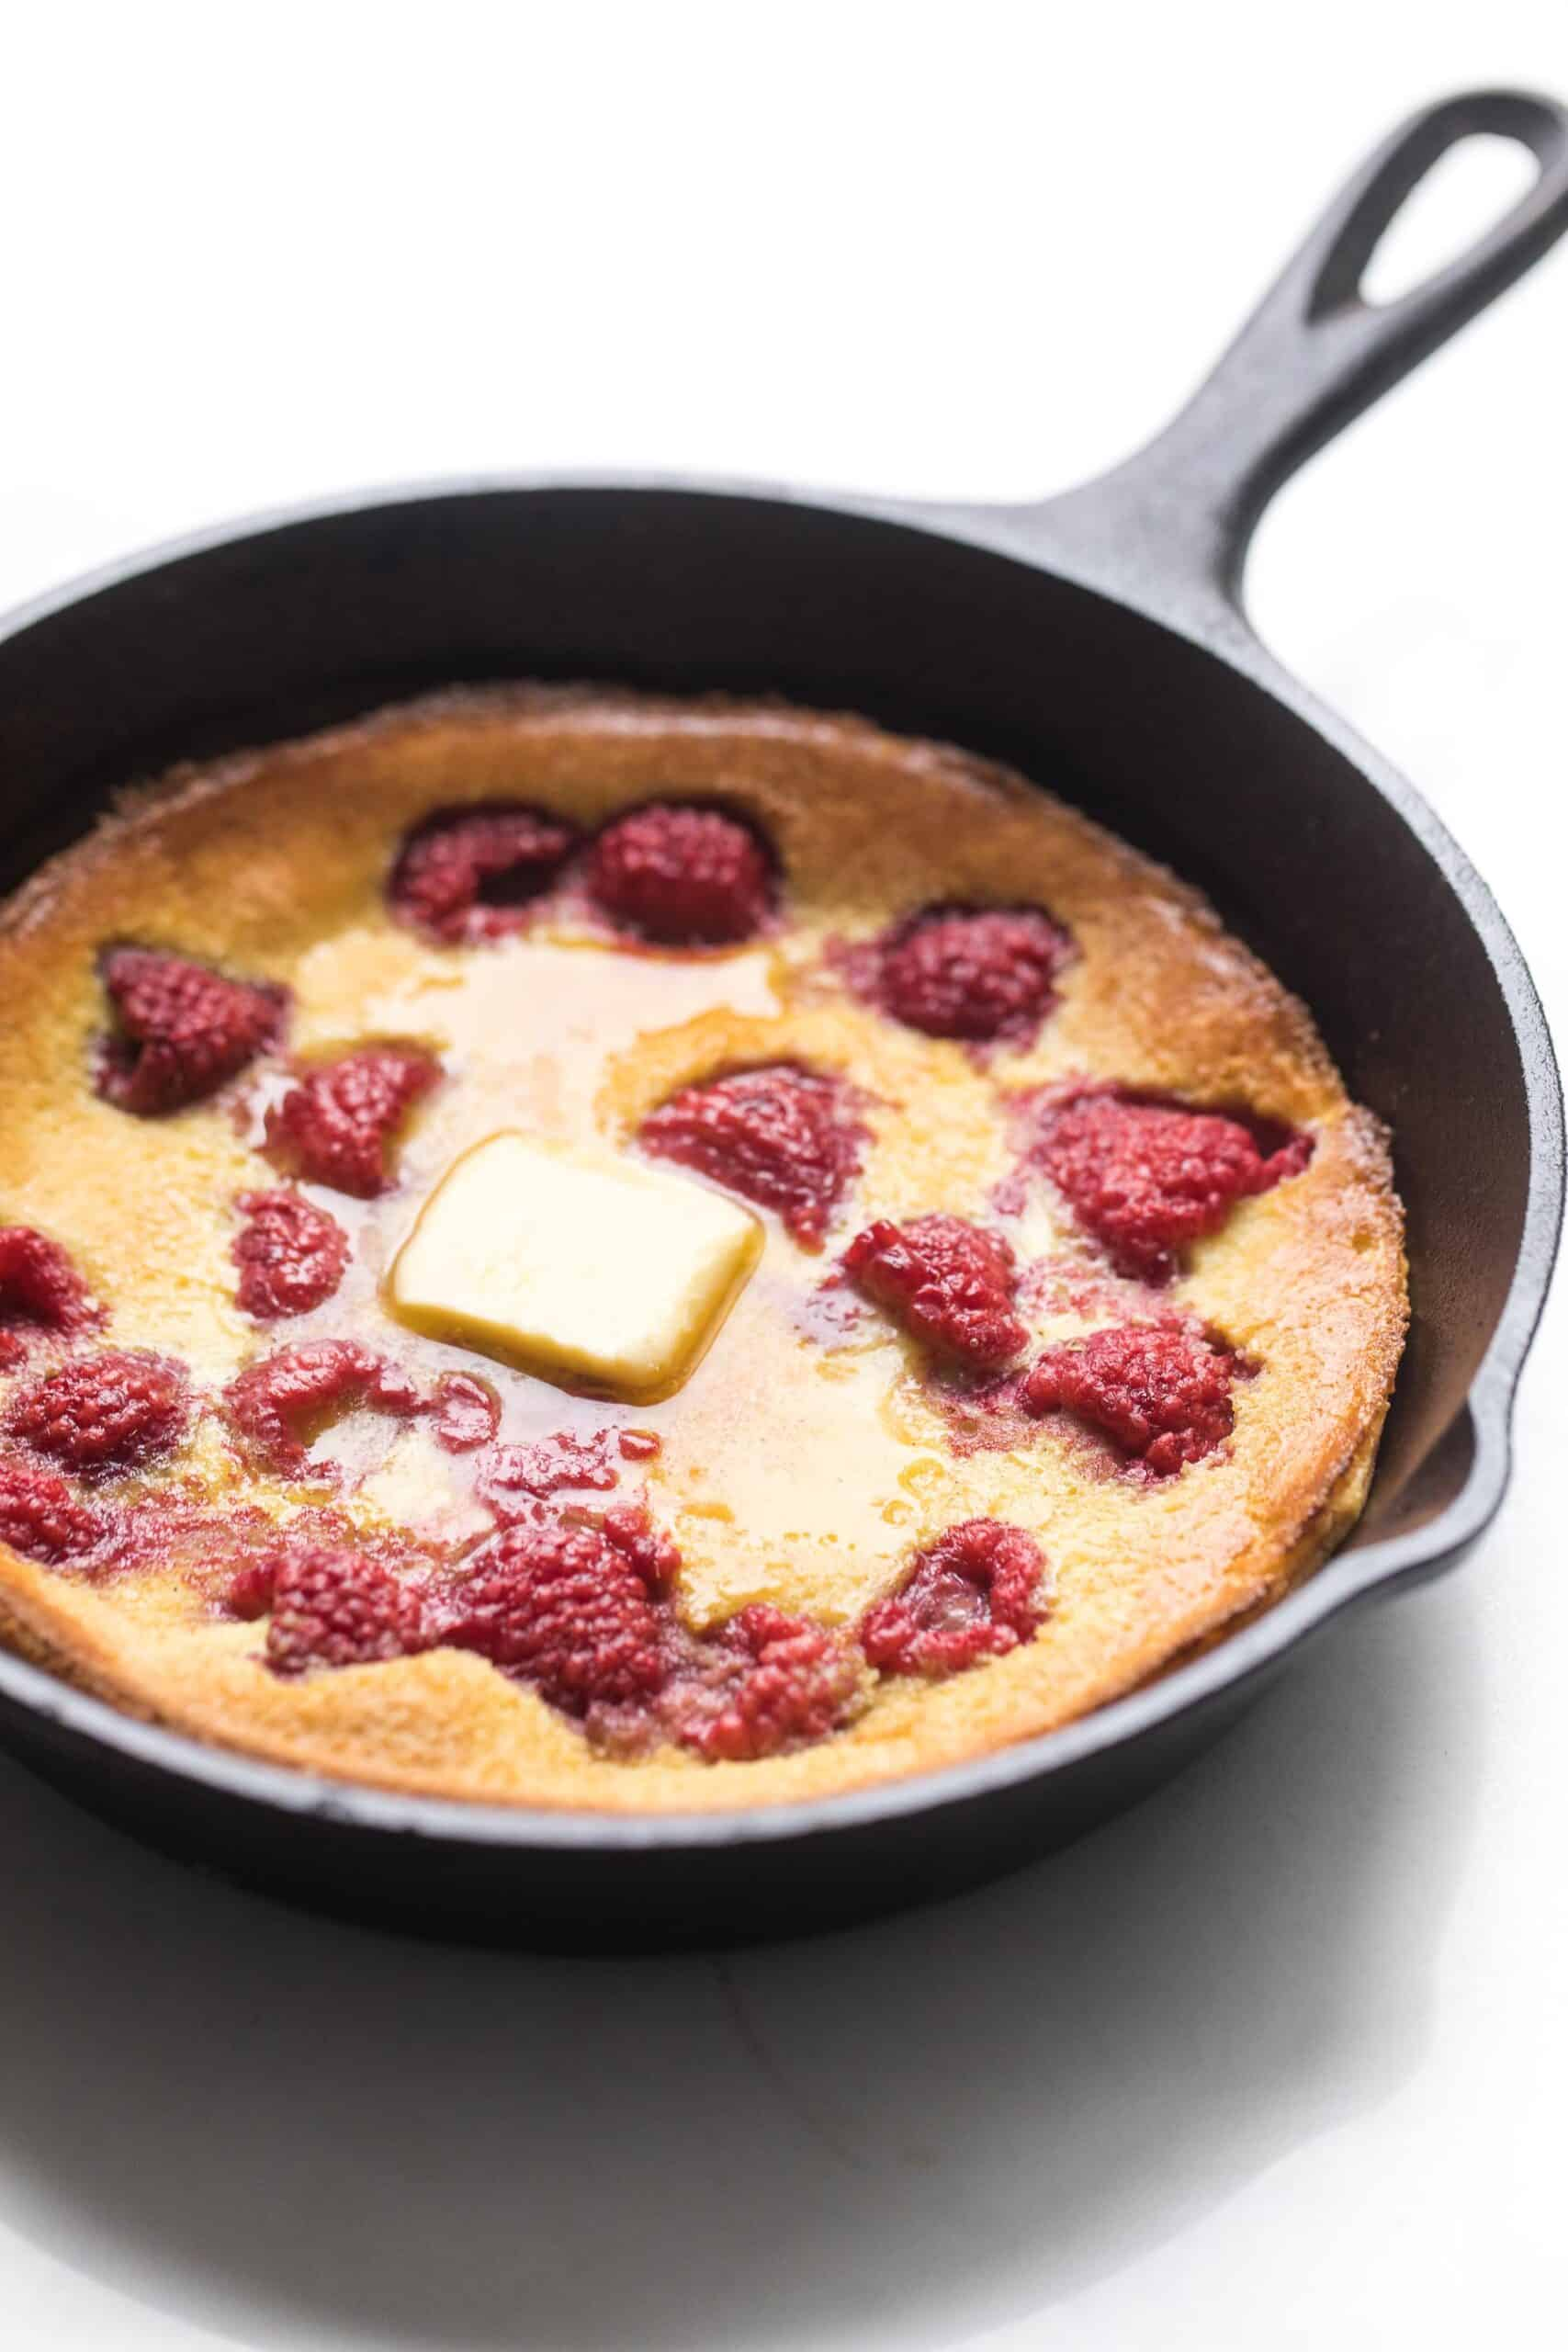 keto dutch baby pancake in a cast iron skillet with raspberries